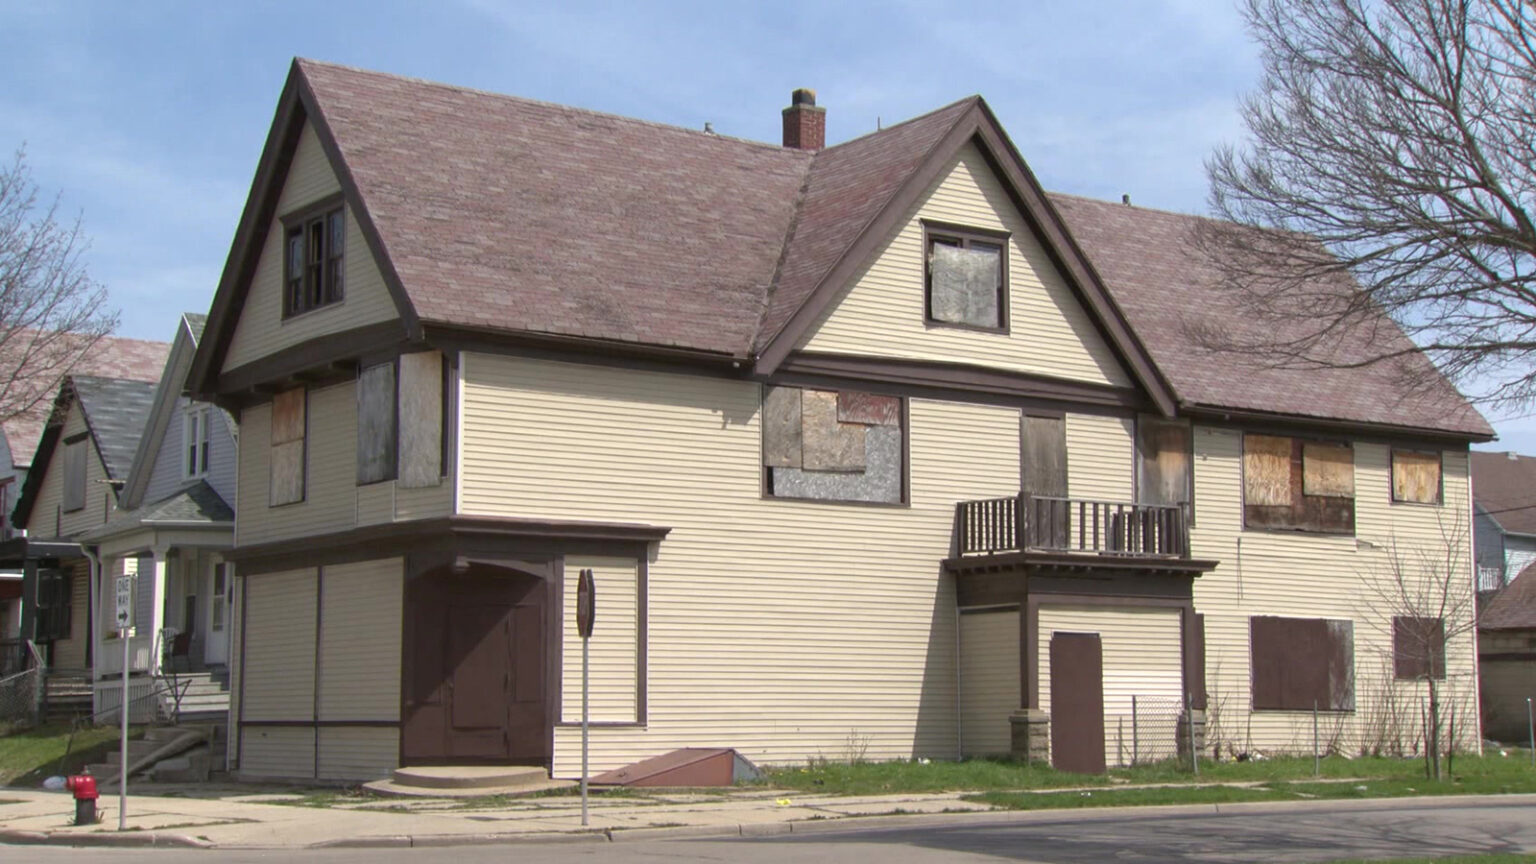 House in Milwaukee with boarded windows